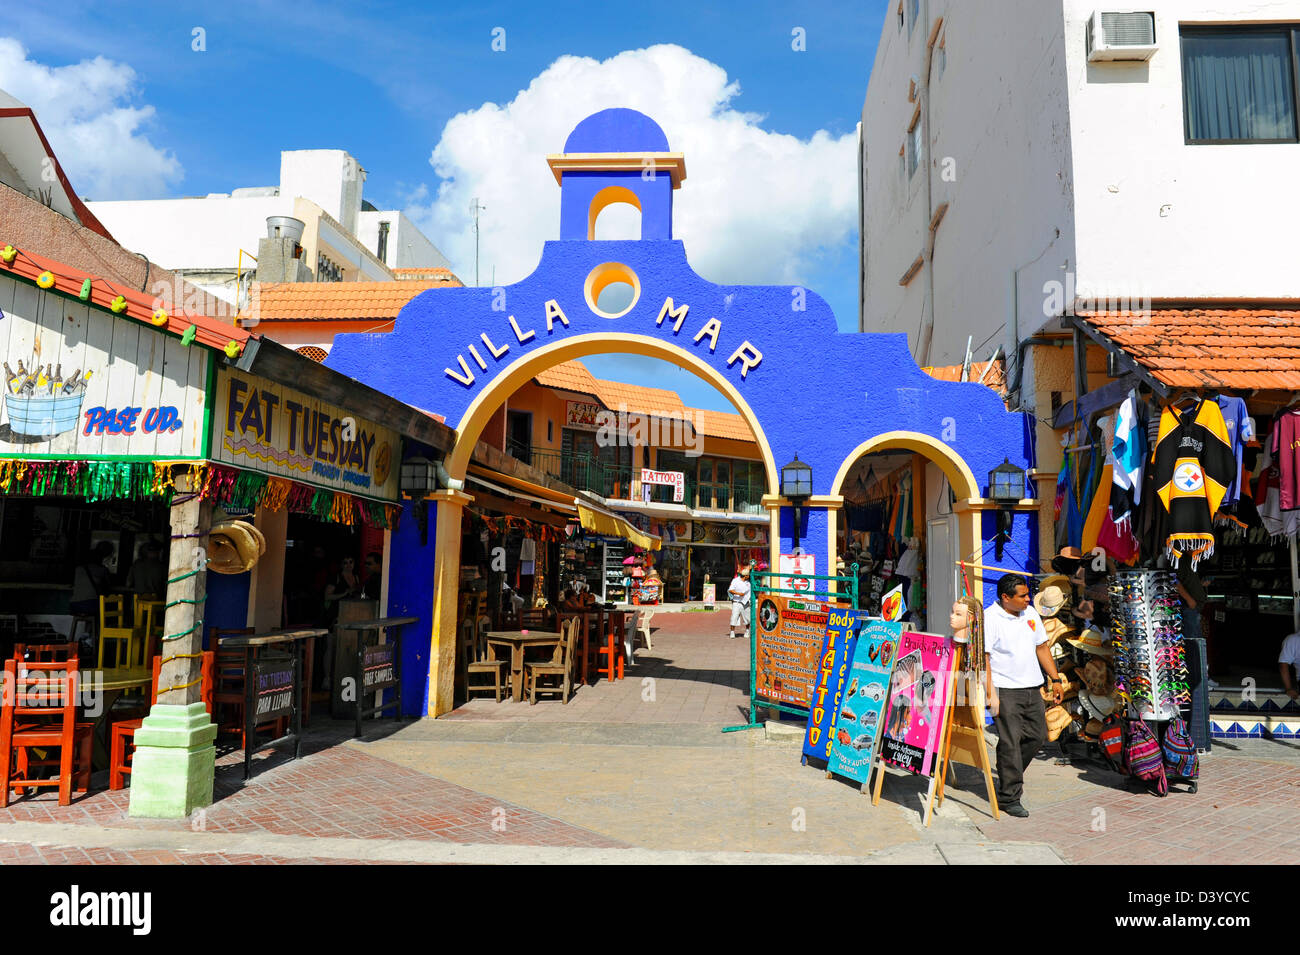 Shopping Area Cozumel Mexico Cruise Ship Port Stock Photo ... |Cozumel Mexico Stores With Boots